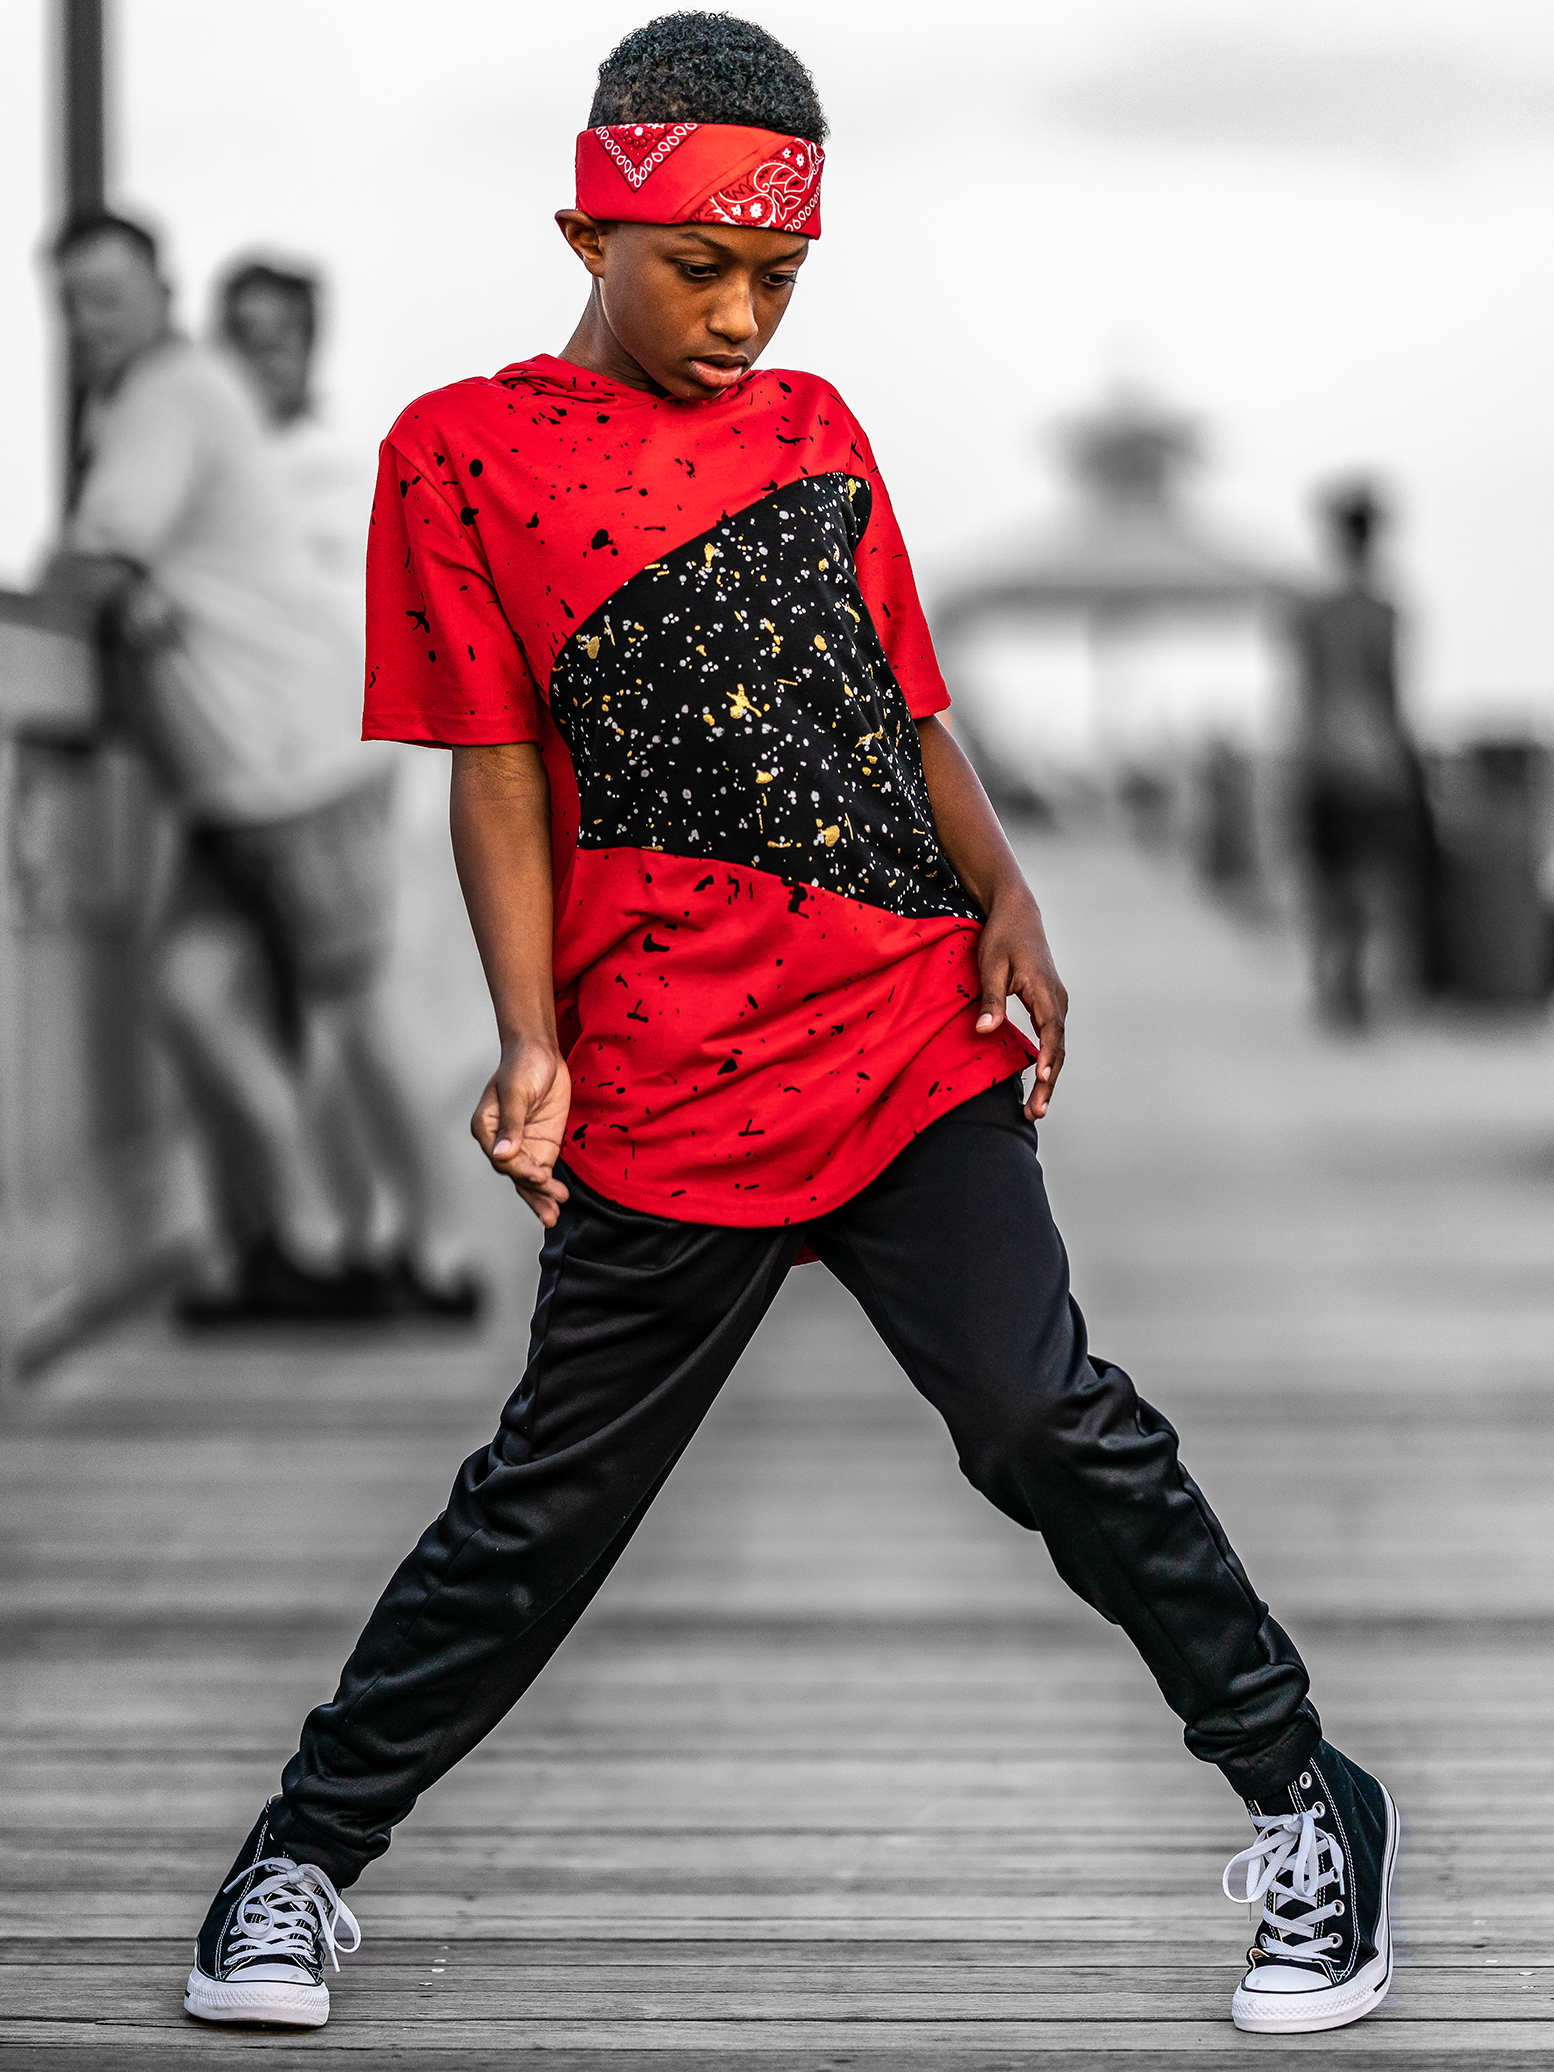 Hip hop Jayden ready to dance